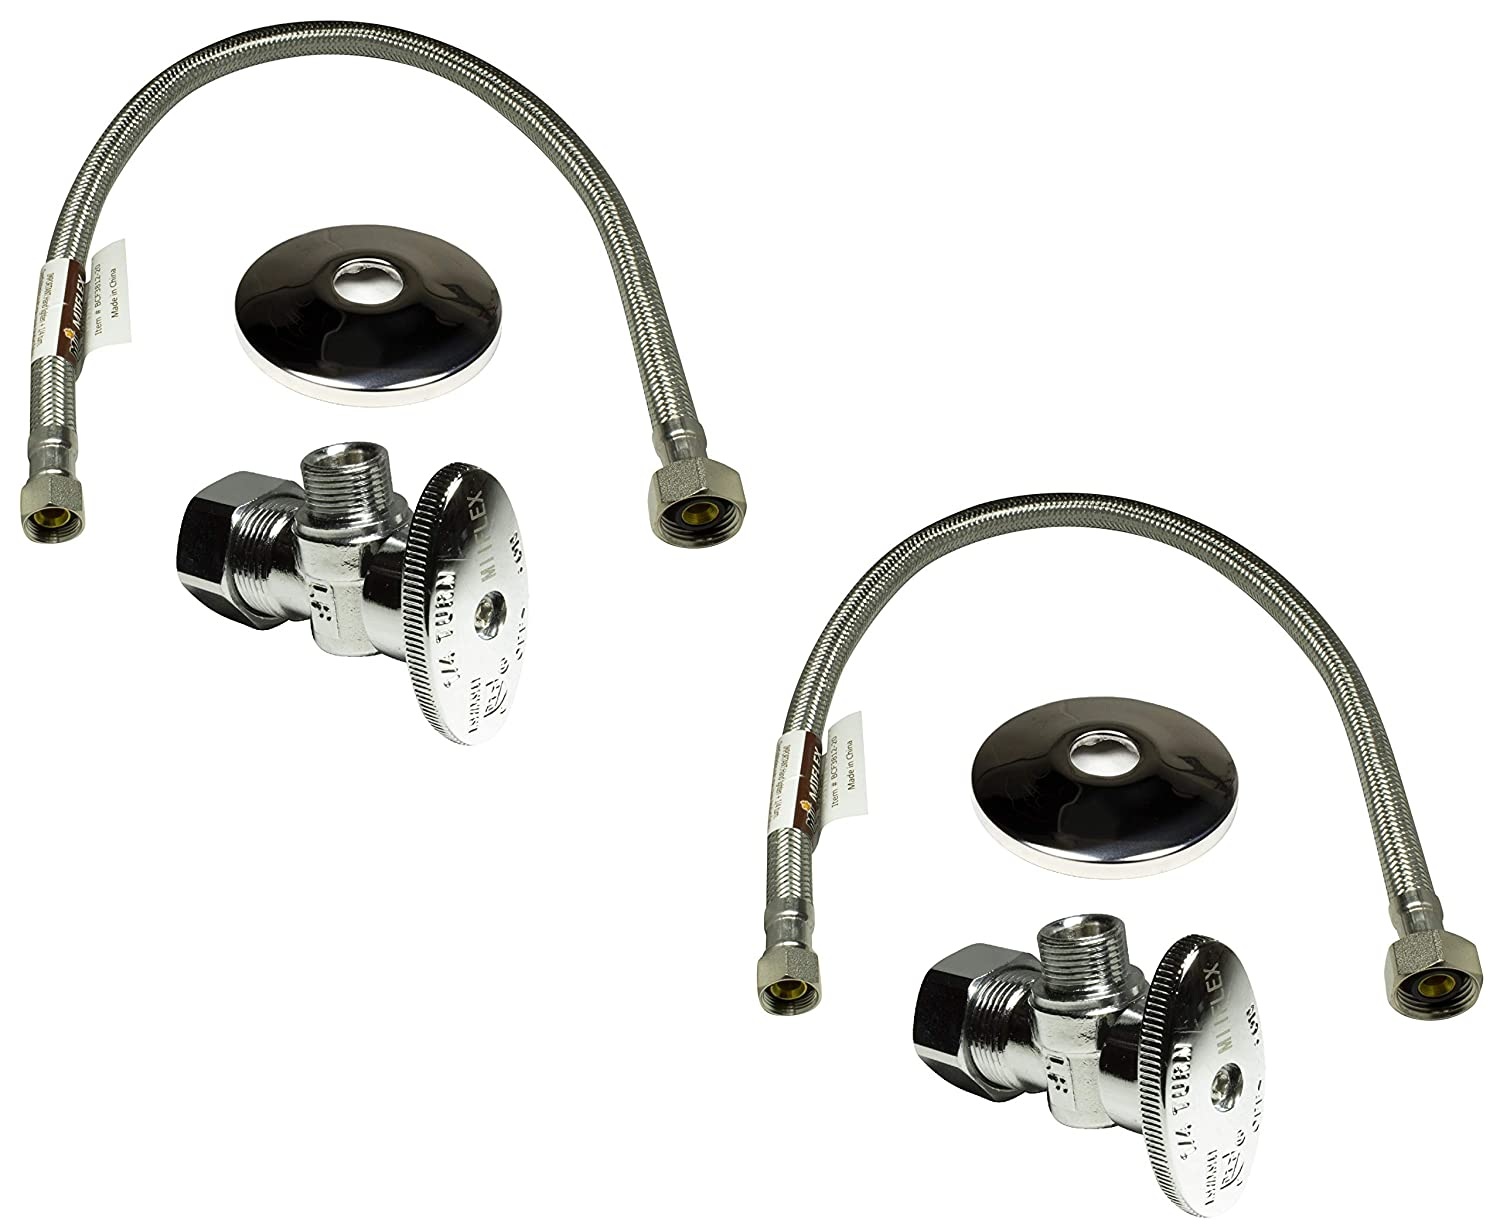 "Complete Set 1/2 in. NOM Inlet x 3/8 in. OD Compression Outlet Angle Shut Off Valve + Escutcheon Plate + 20"" Long Stainless Steel Braided Faucet Water Supply Line (2 Pack)"